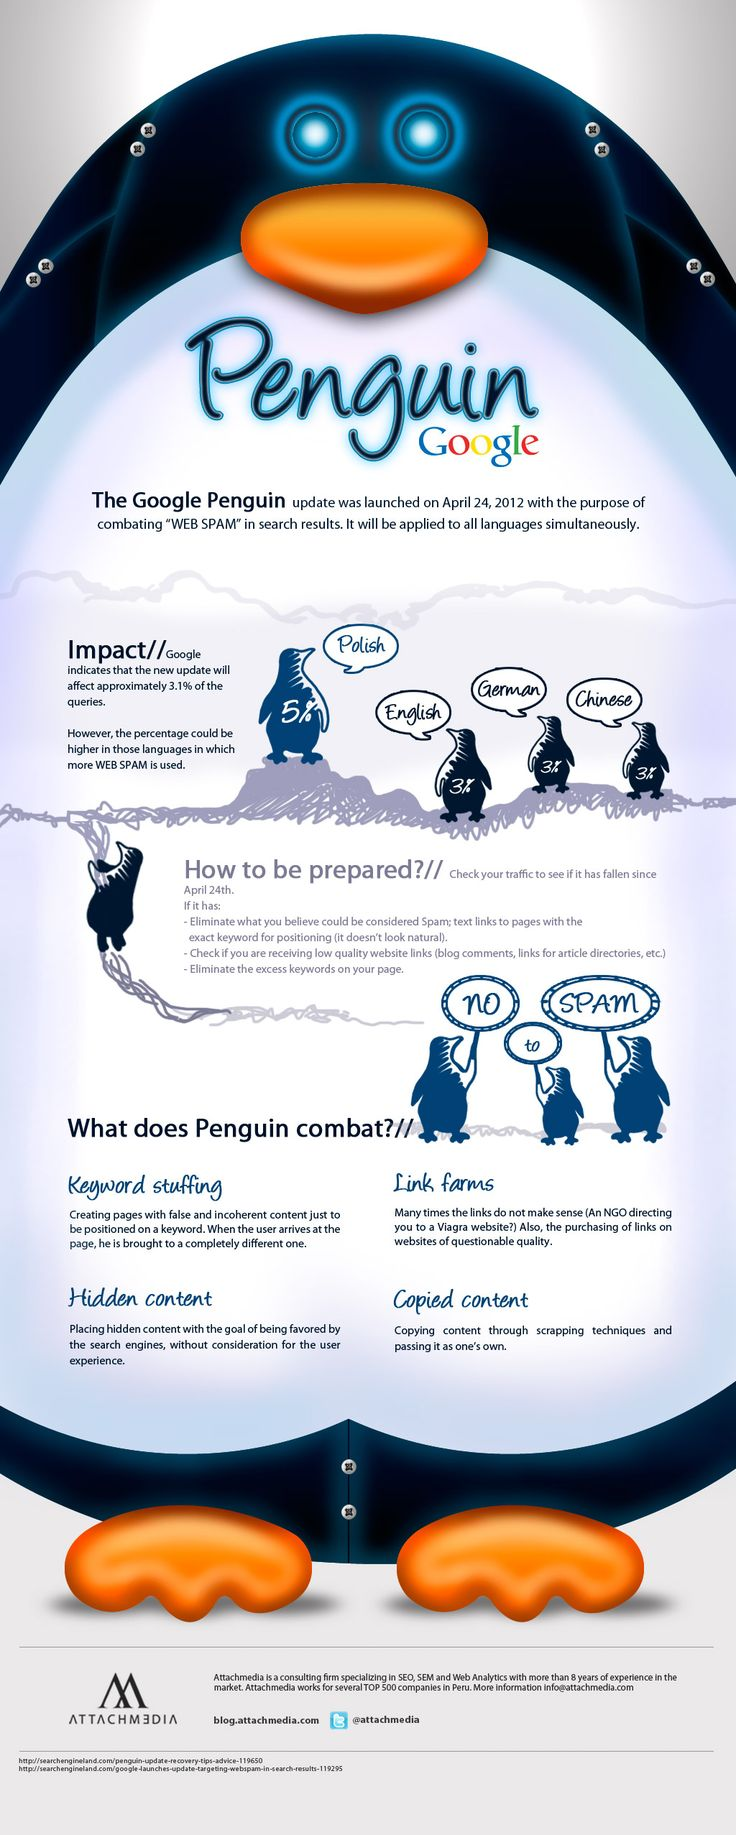 A Look At The Google Penguin by http://www.stateofsearch.com/a-look-at-the-google-penguin/